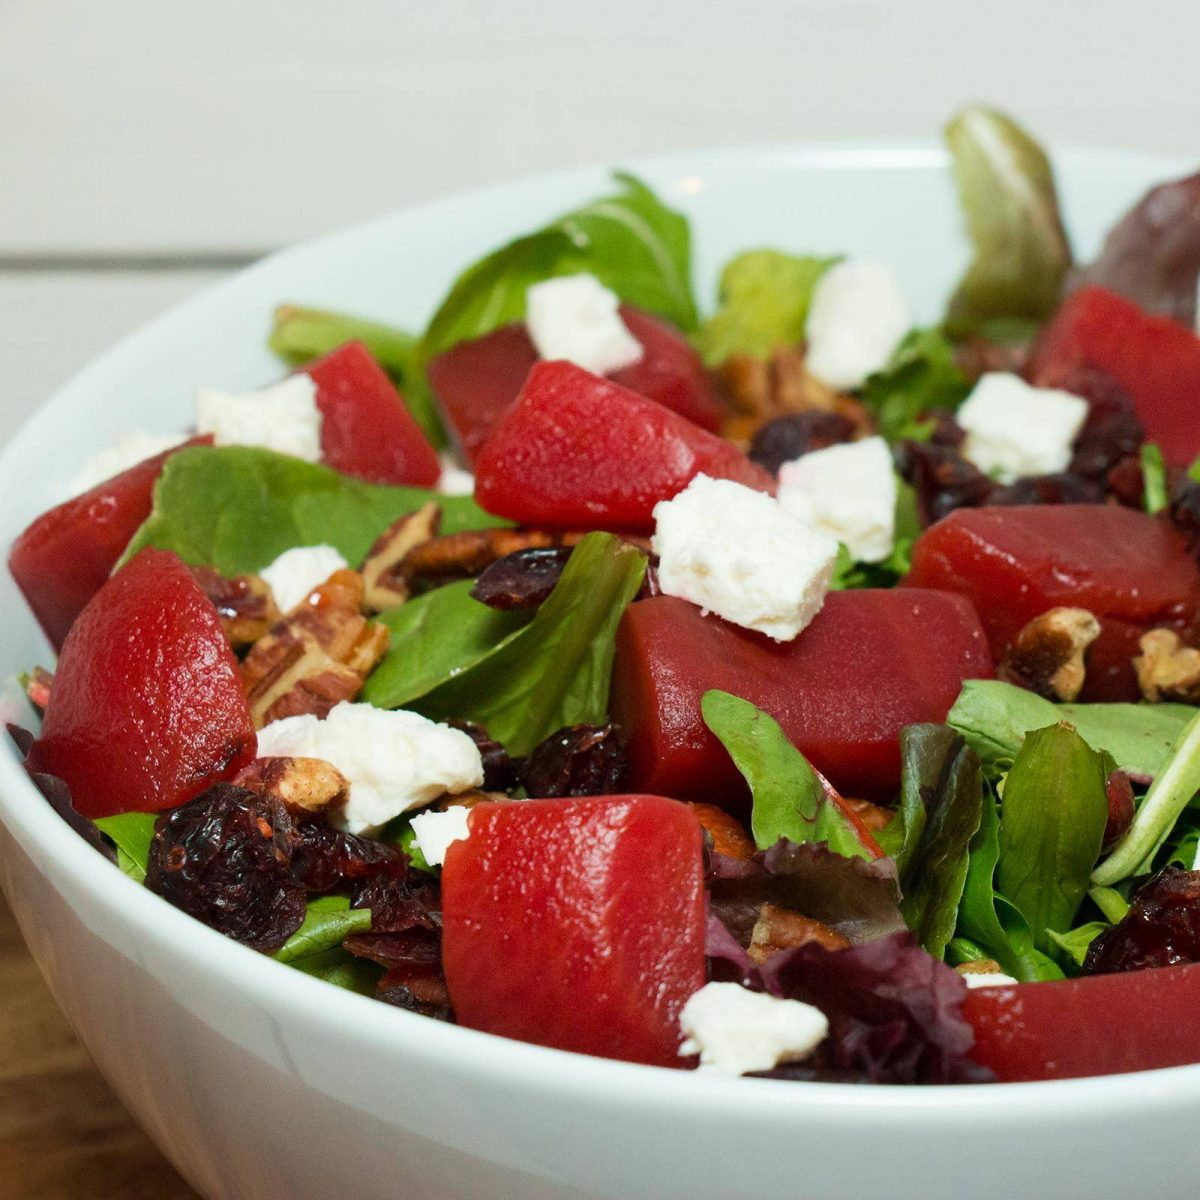 Sweet Beets And Greens Salad With Goat Cheese